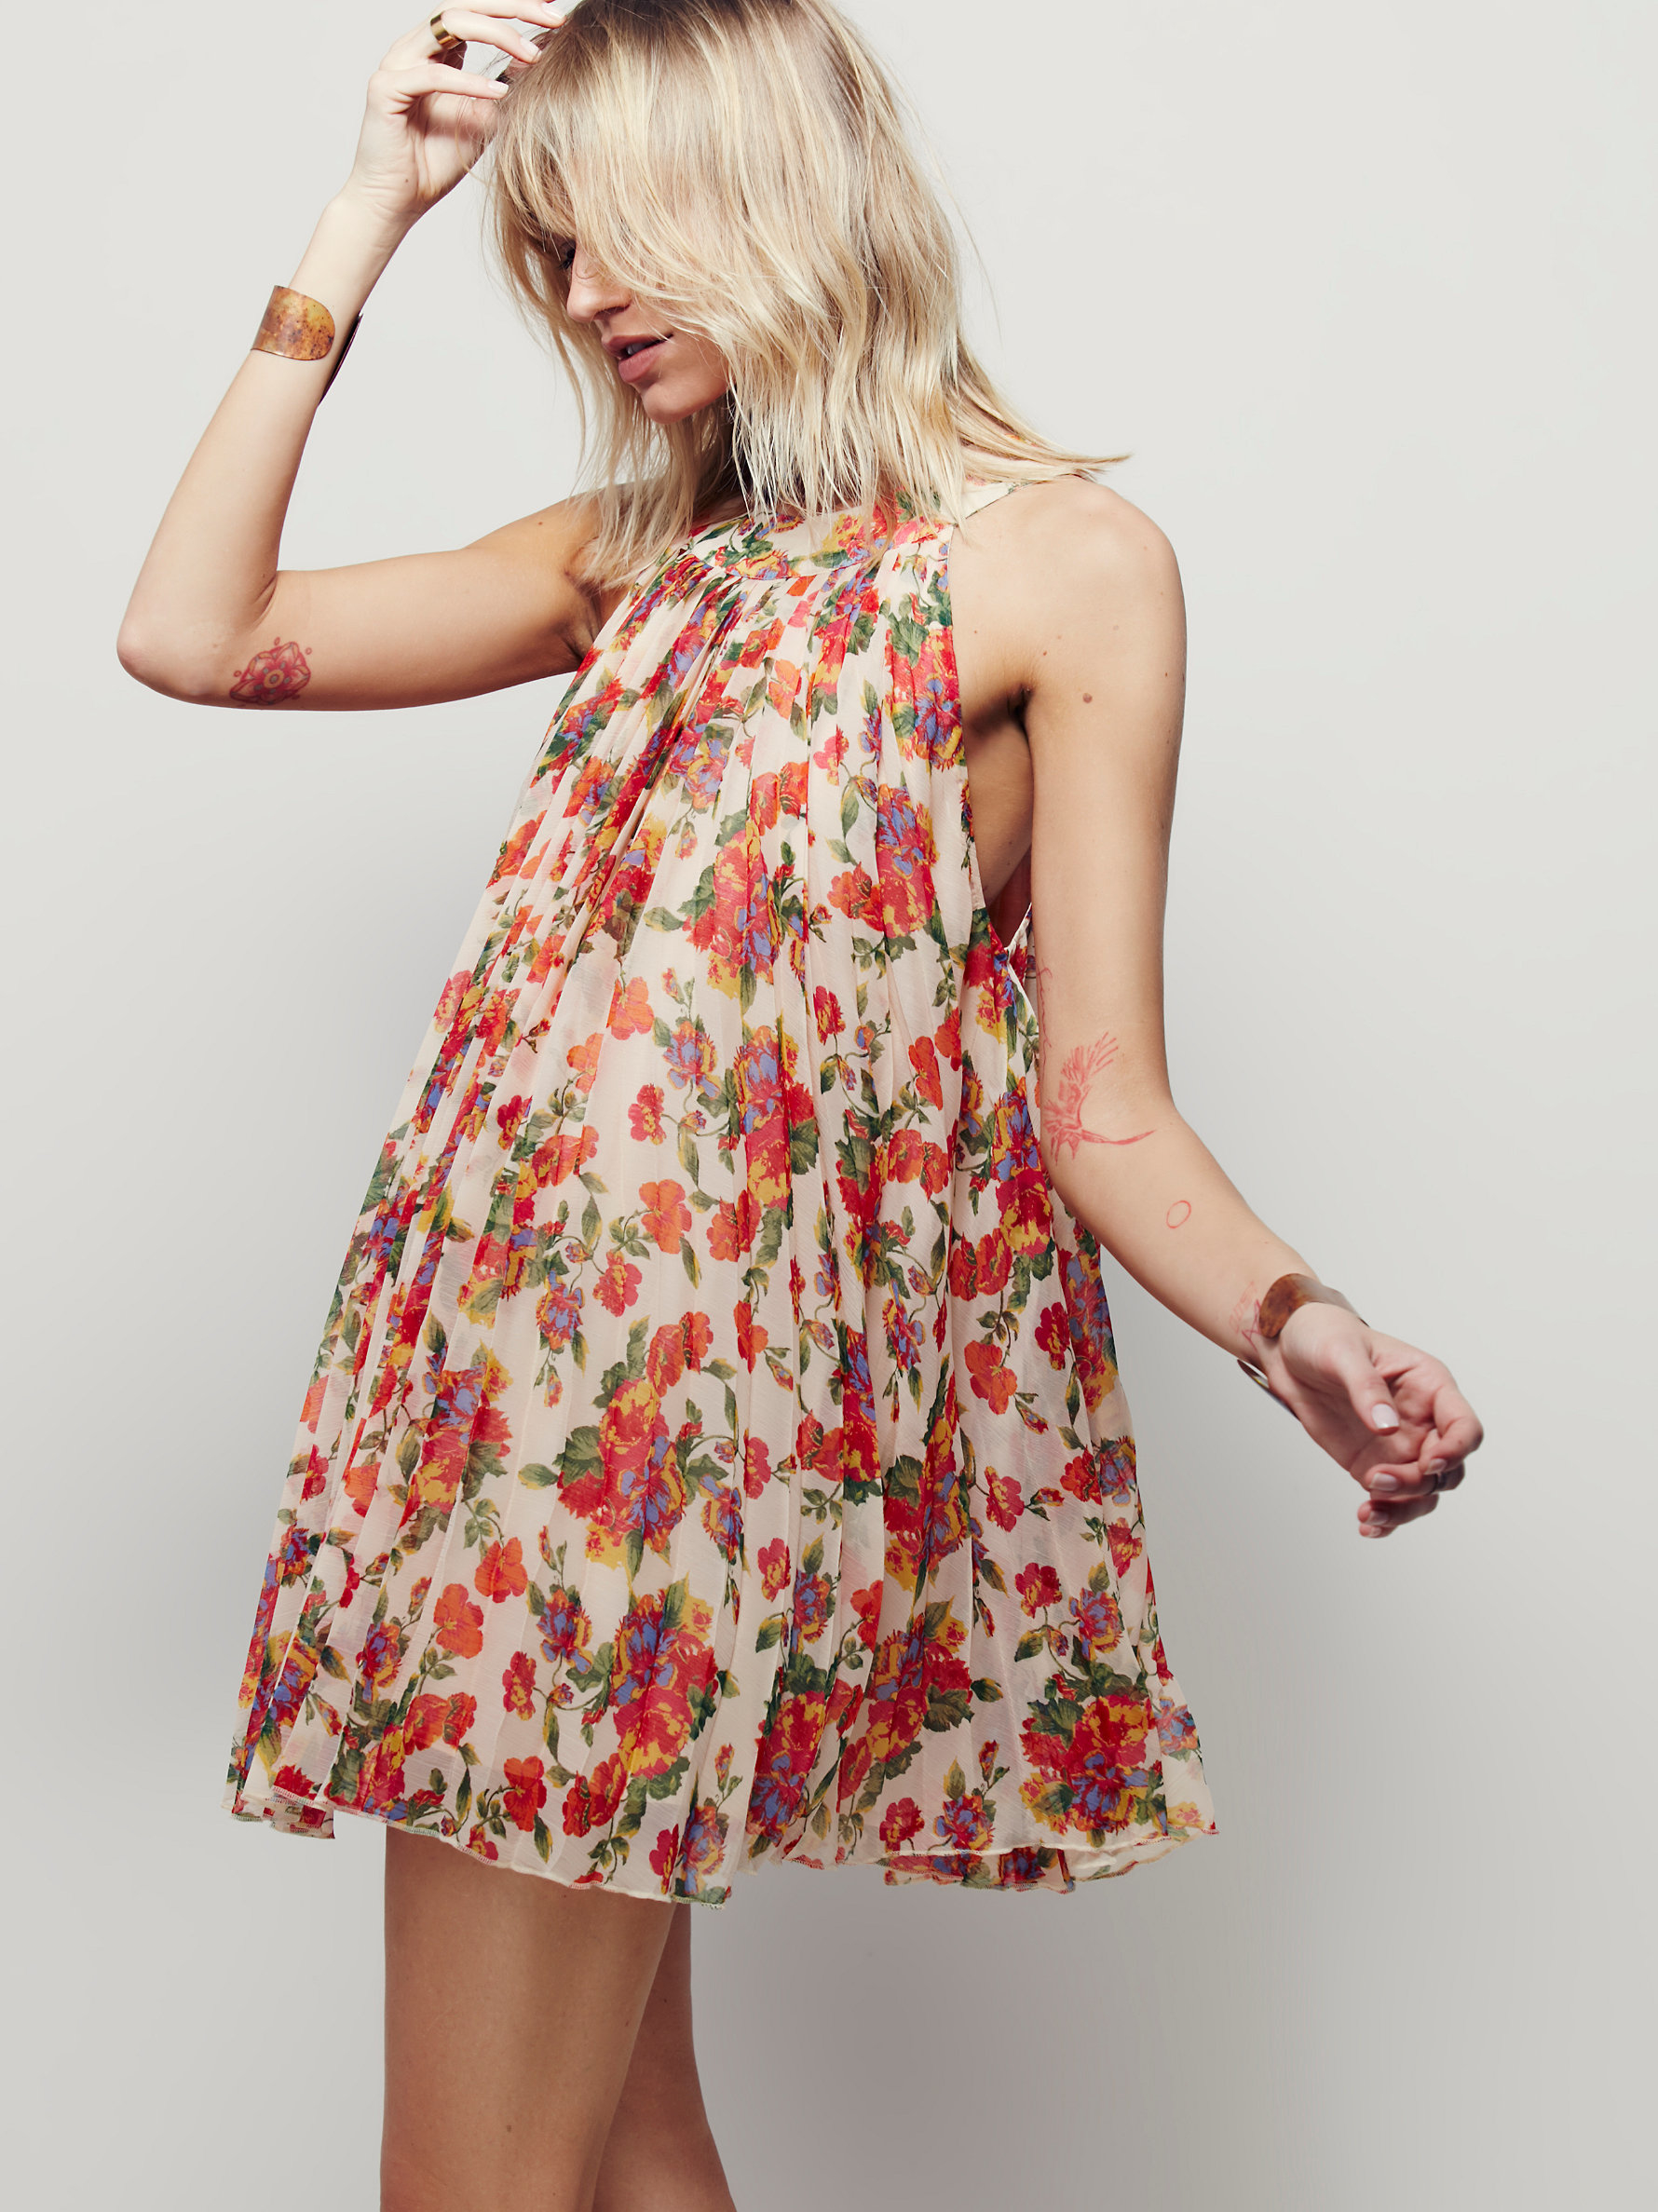 women's dresses for every moment. pleated dress with buttons. dress with contrasting buttons. combination ribbed dress. jacquard dress with metallic thread. cut out knit dress. striped dress. animal print halter dress. floral dress. jacquard dress with buttons. embroidered dress with pompoms.